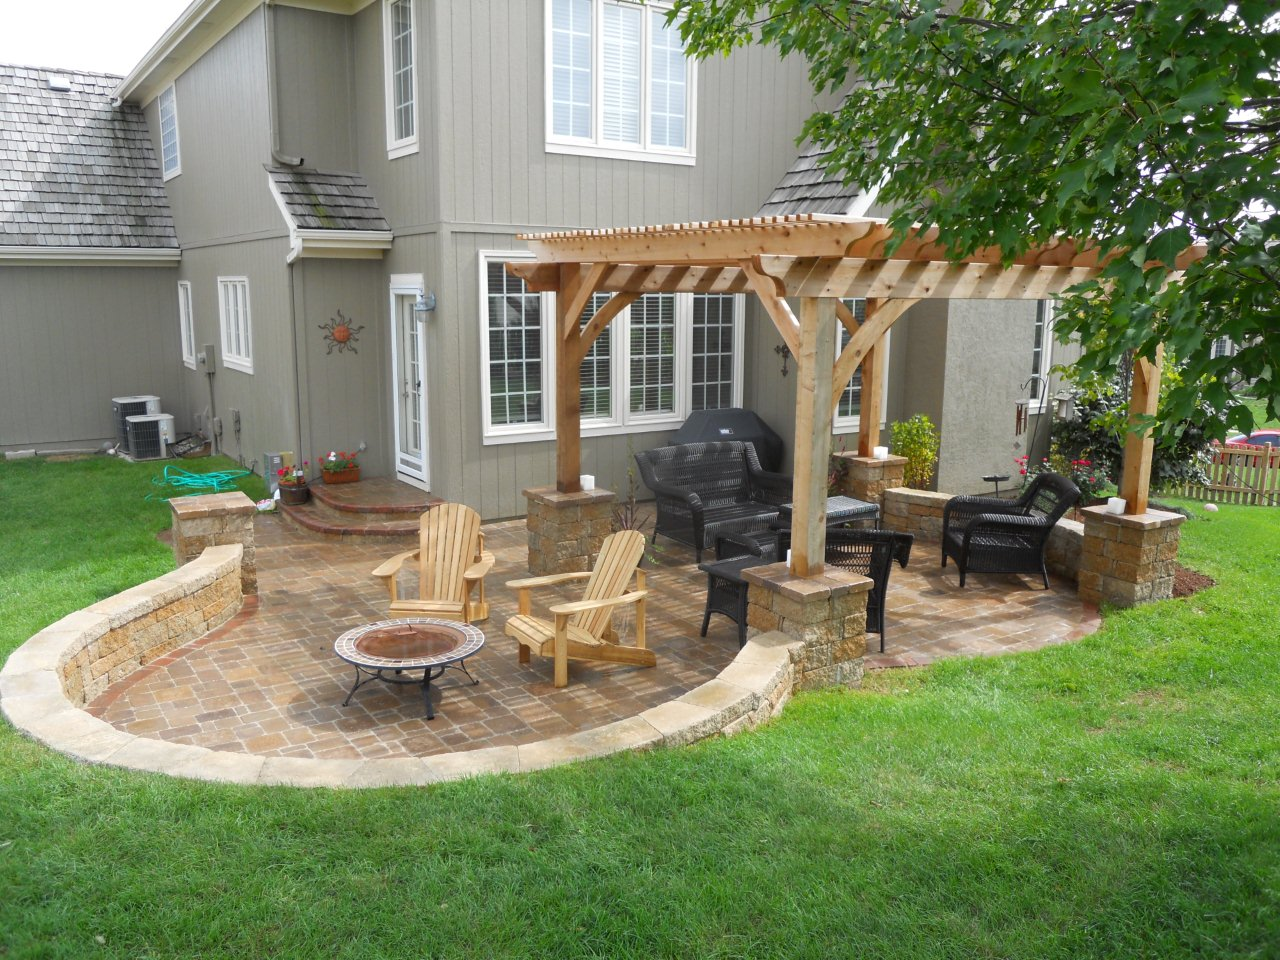 Flagstone Patio Pavers Design Ideas For Backyard Patio ... on Yard Paver Ideas  id=61156